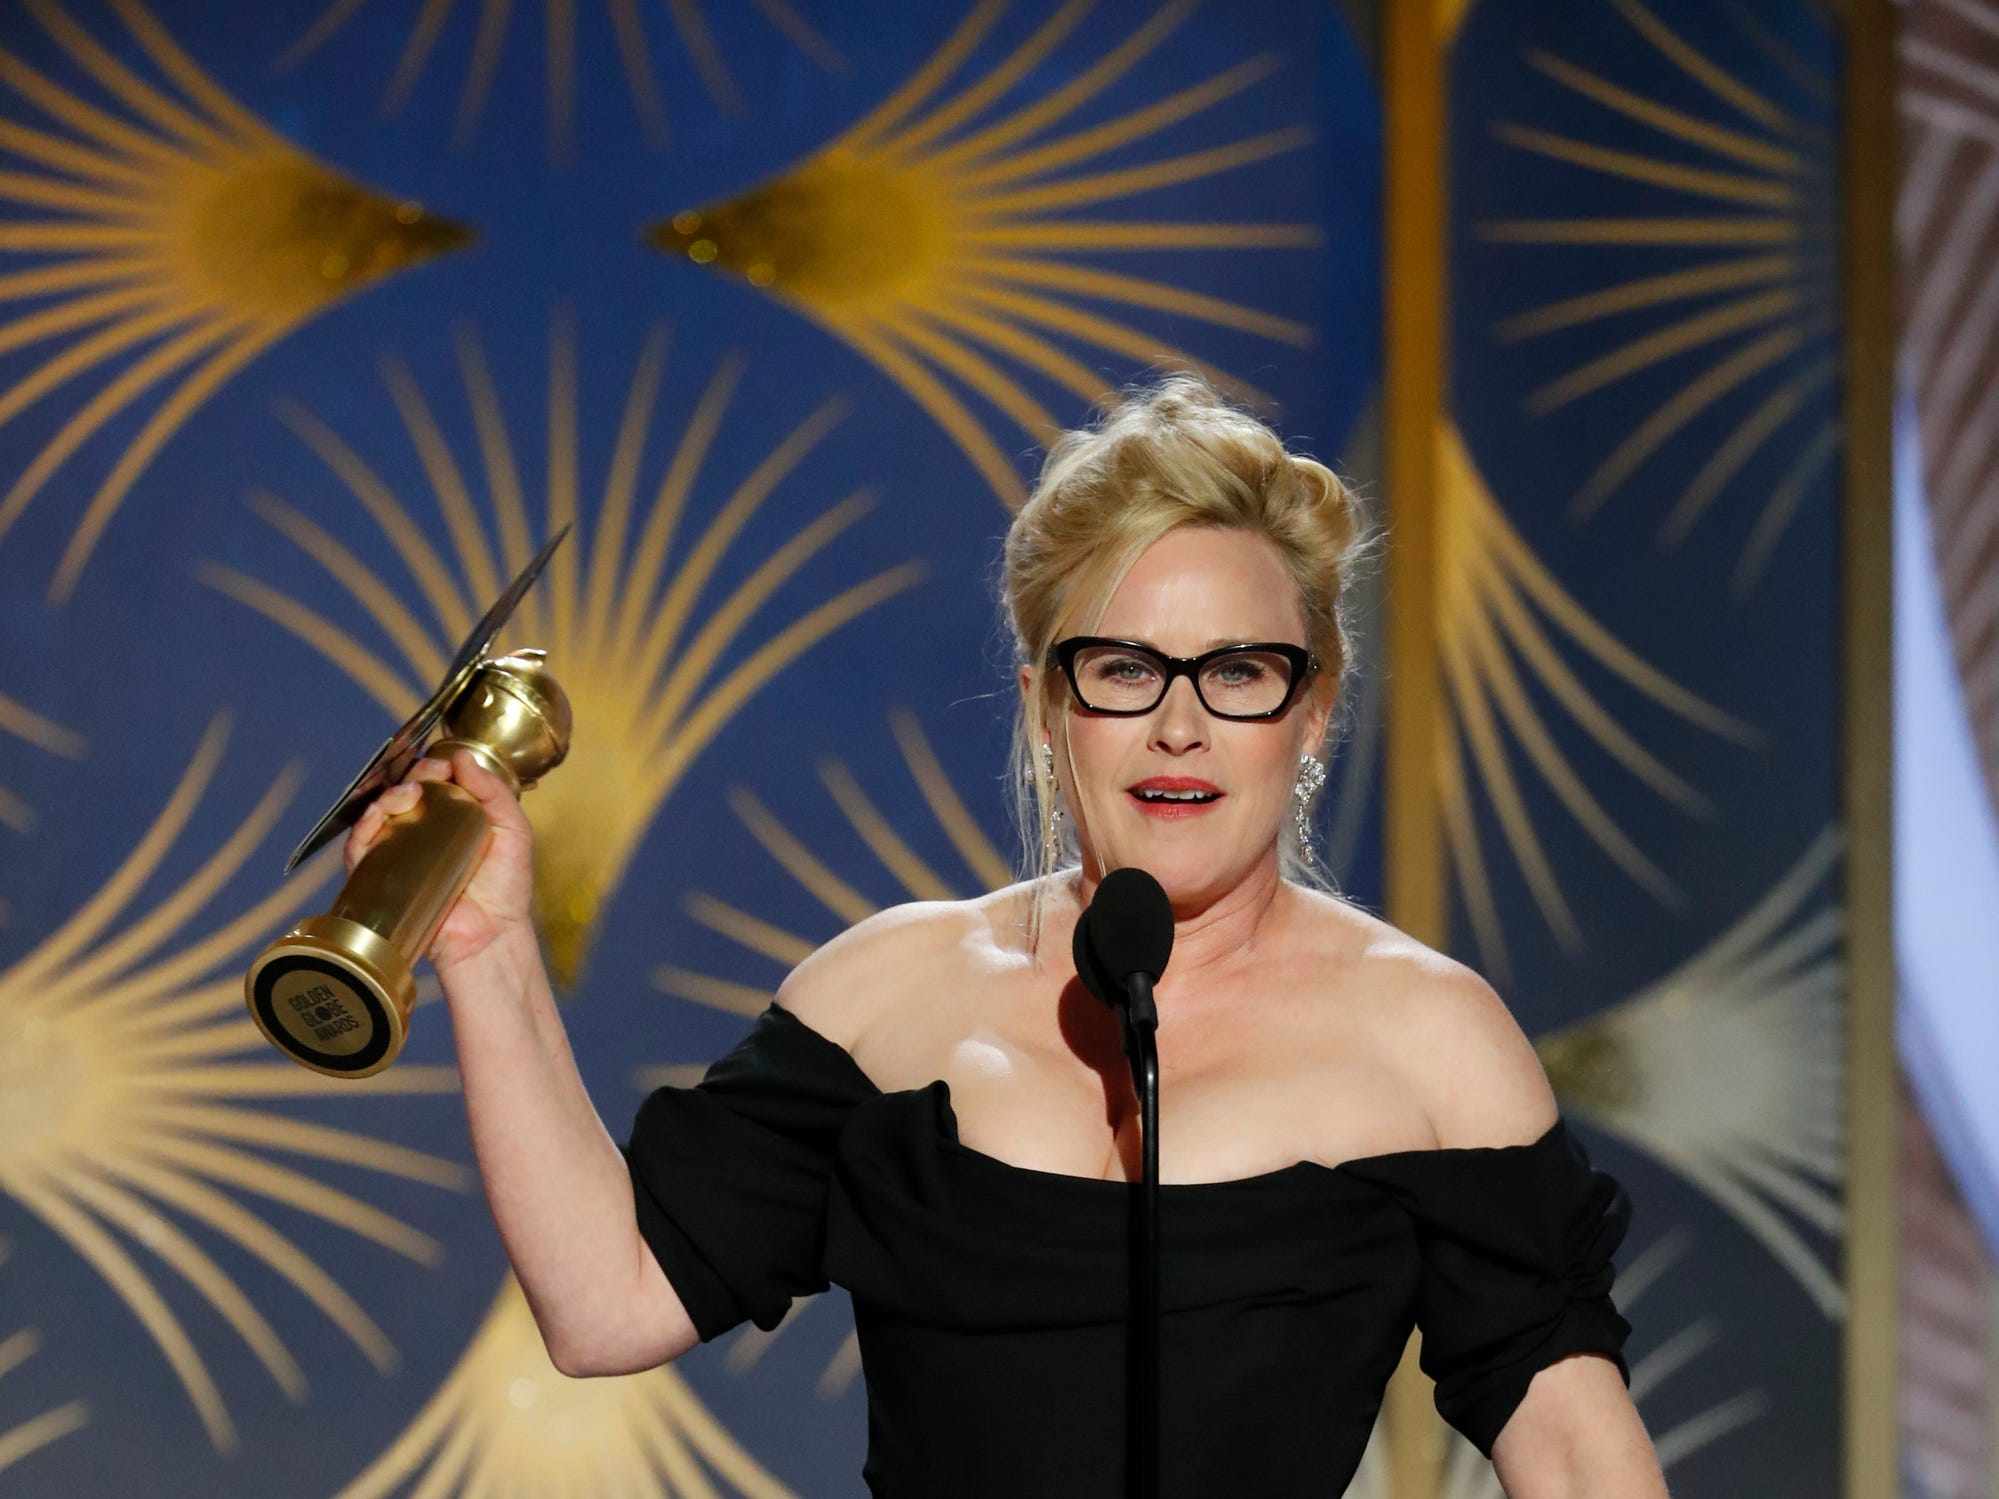 This image released by NBC shows Patricia Arquette accepting the award for best actress in a limited series or motion picture made for TV during the 76th Annual Golden Globe Awards at the Beverly Hilton Hotel.